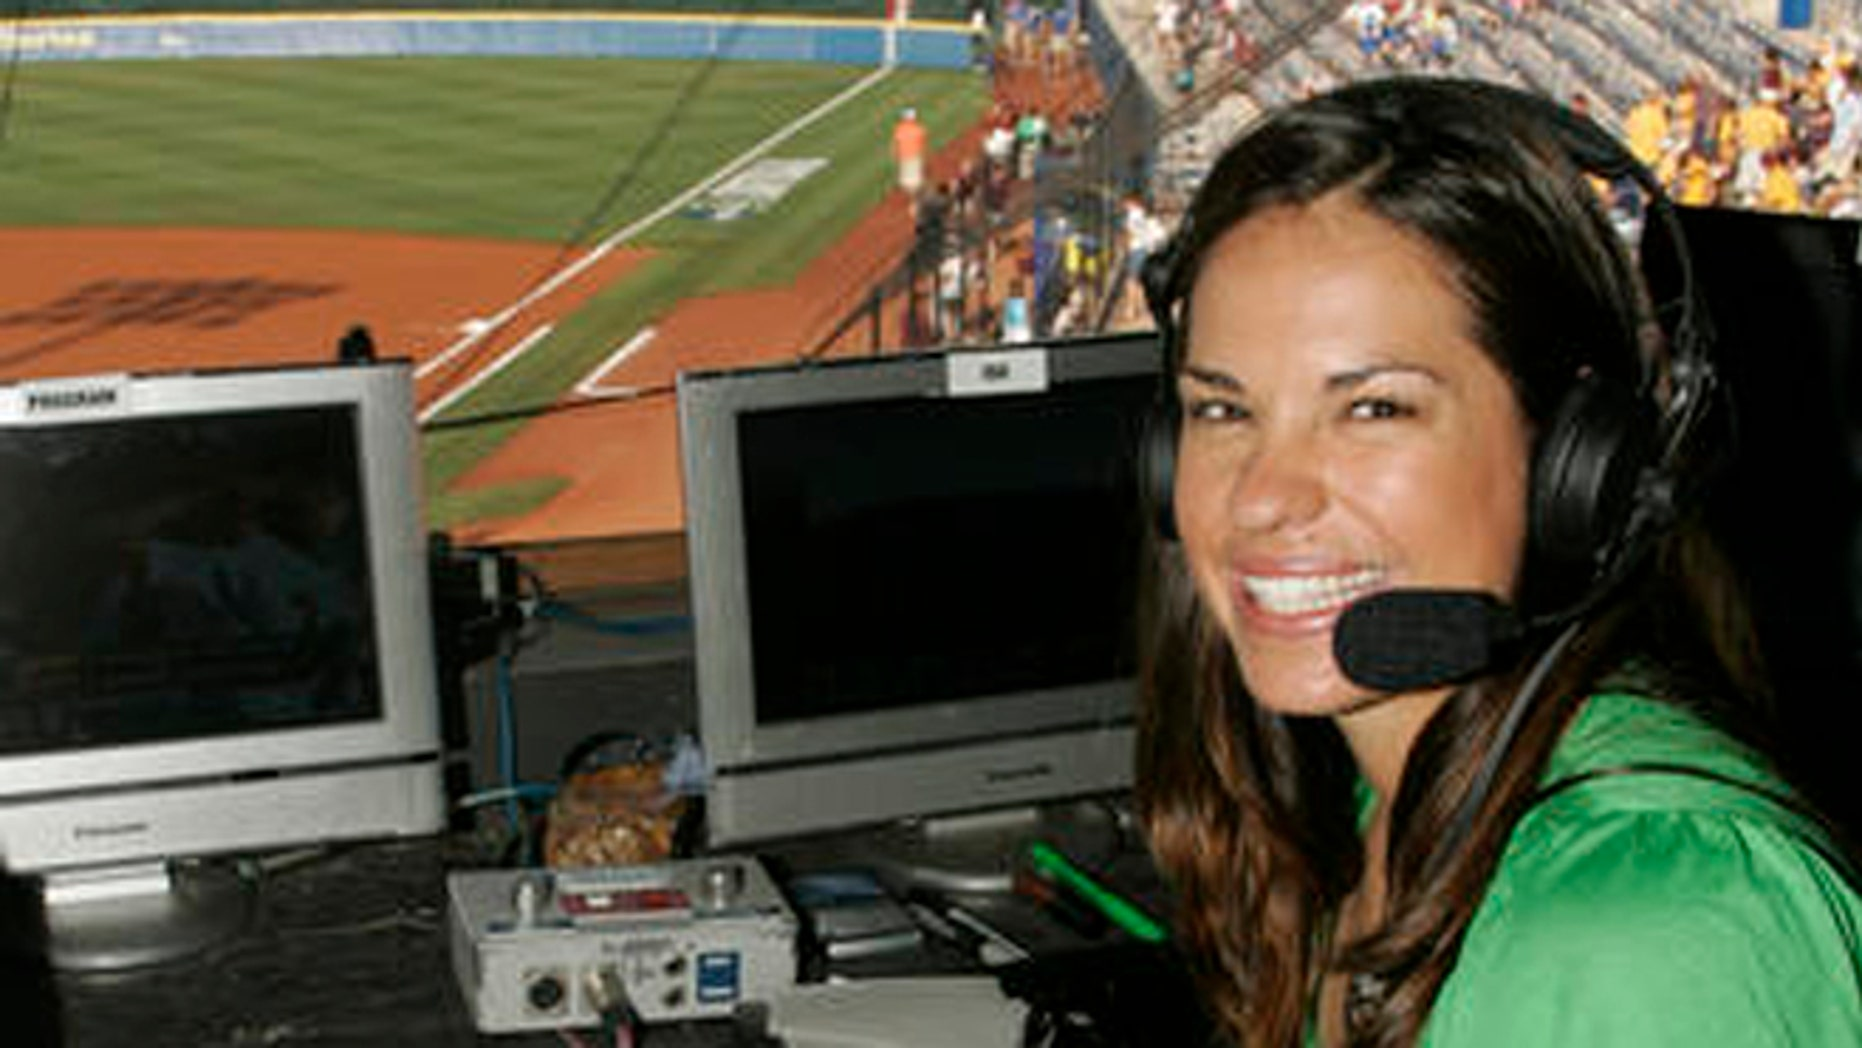 """FILE - In this May 29, 2009 file photo, USA softball player Jessica Mendoza poses for a photo in the ESPN broadcast booth at the Women's College World Series in Oklahoma City.  Mendoza chatted up Kyle Schwarber, broke down pitcher's tendencies and dealt with social media criticism in her historic first full season covering baseball for ESPN. Mendoza recently shuttled between Cleveland and Chicago, giving World Series updates eight times a day for """"Baseball Tonight"""" and """"Sports Center.""""(AP Photo)"""